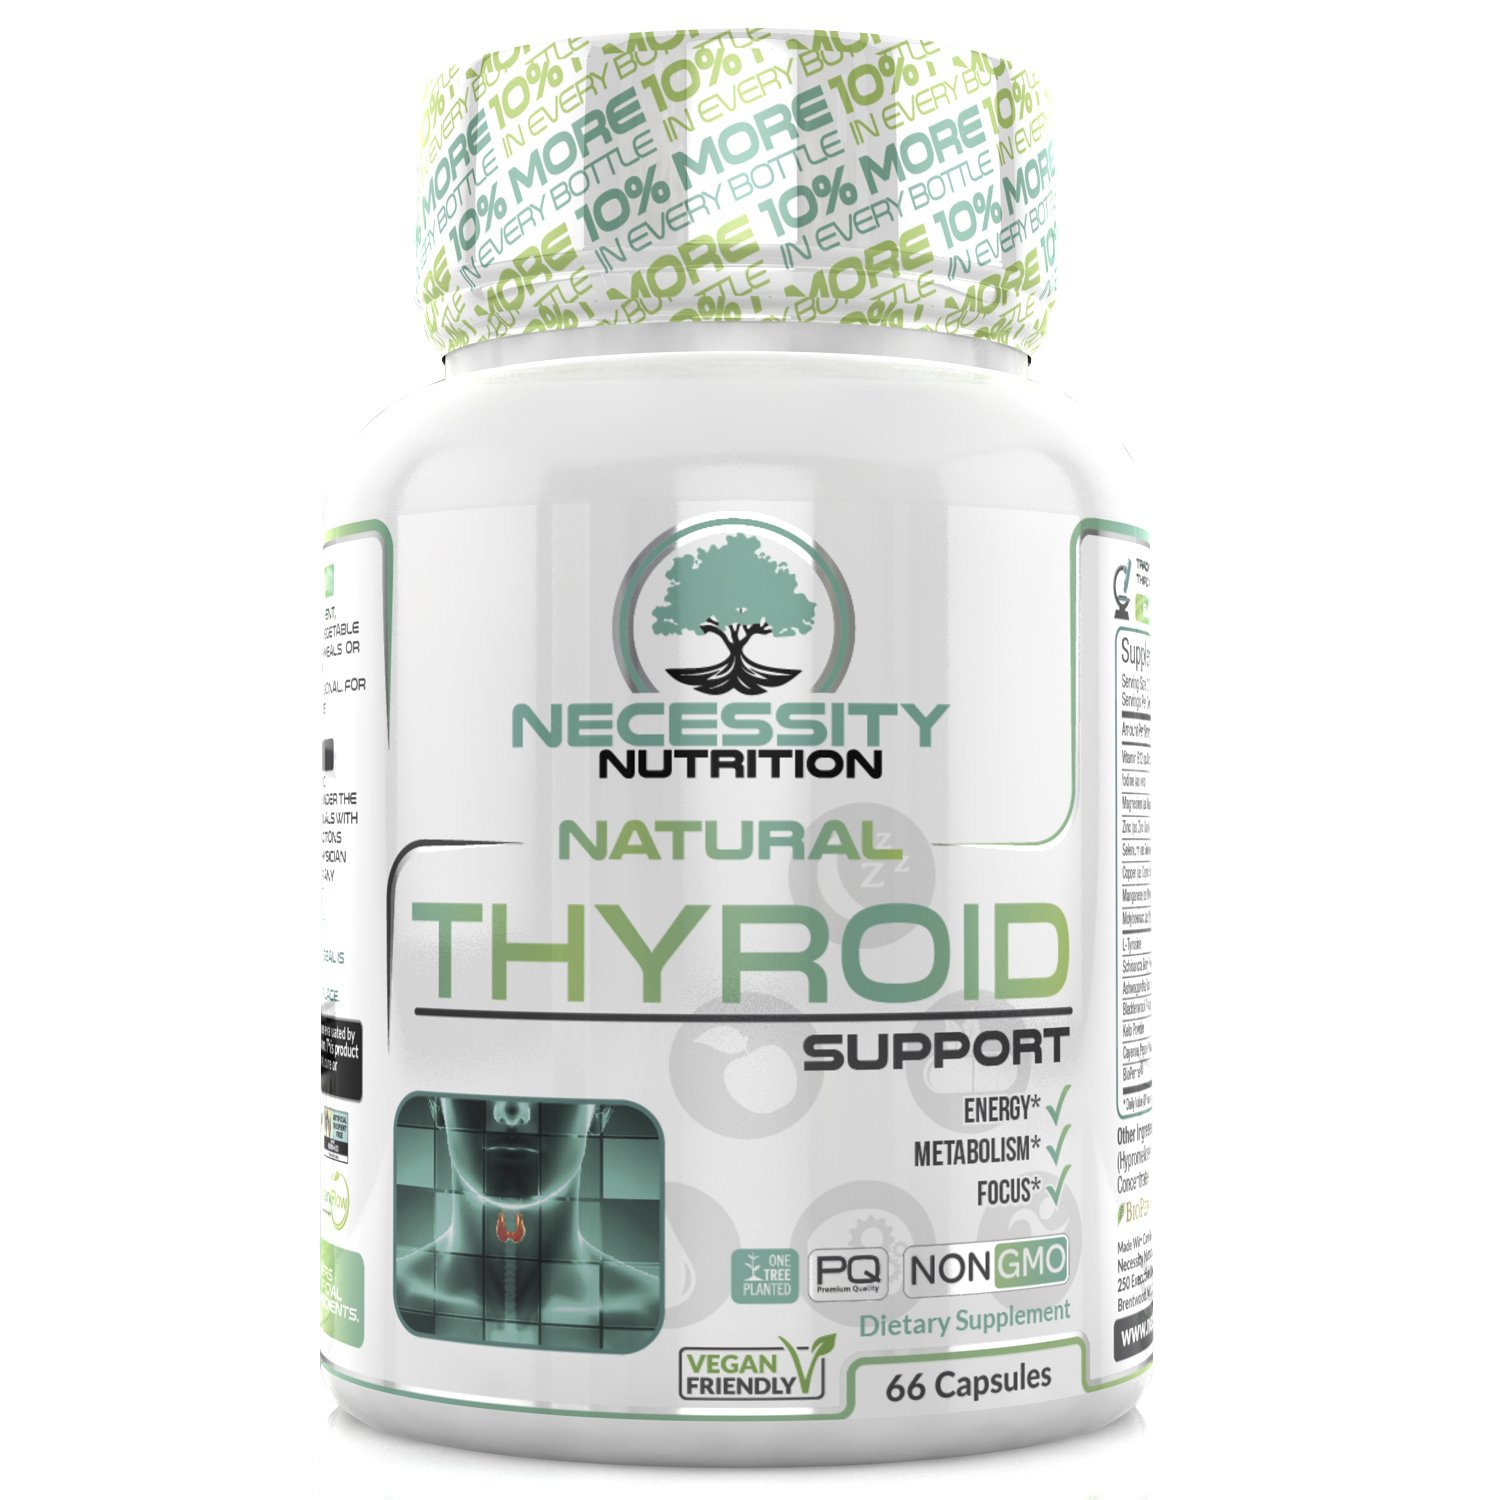 Thyroid Support Supplement Complex - Energy Metabolism Focus Natural Weight Loss Formula Non GMO - Iodine Vitamin B12 Zinc Ashwagandha Selenium Kelp Copper Magnesium -Boost Brain Function 66 Capsules